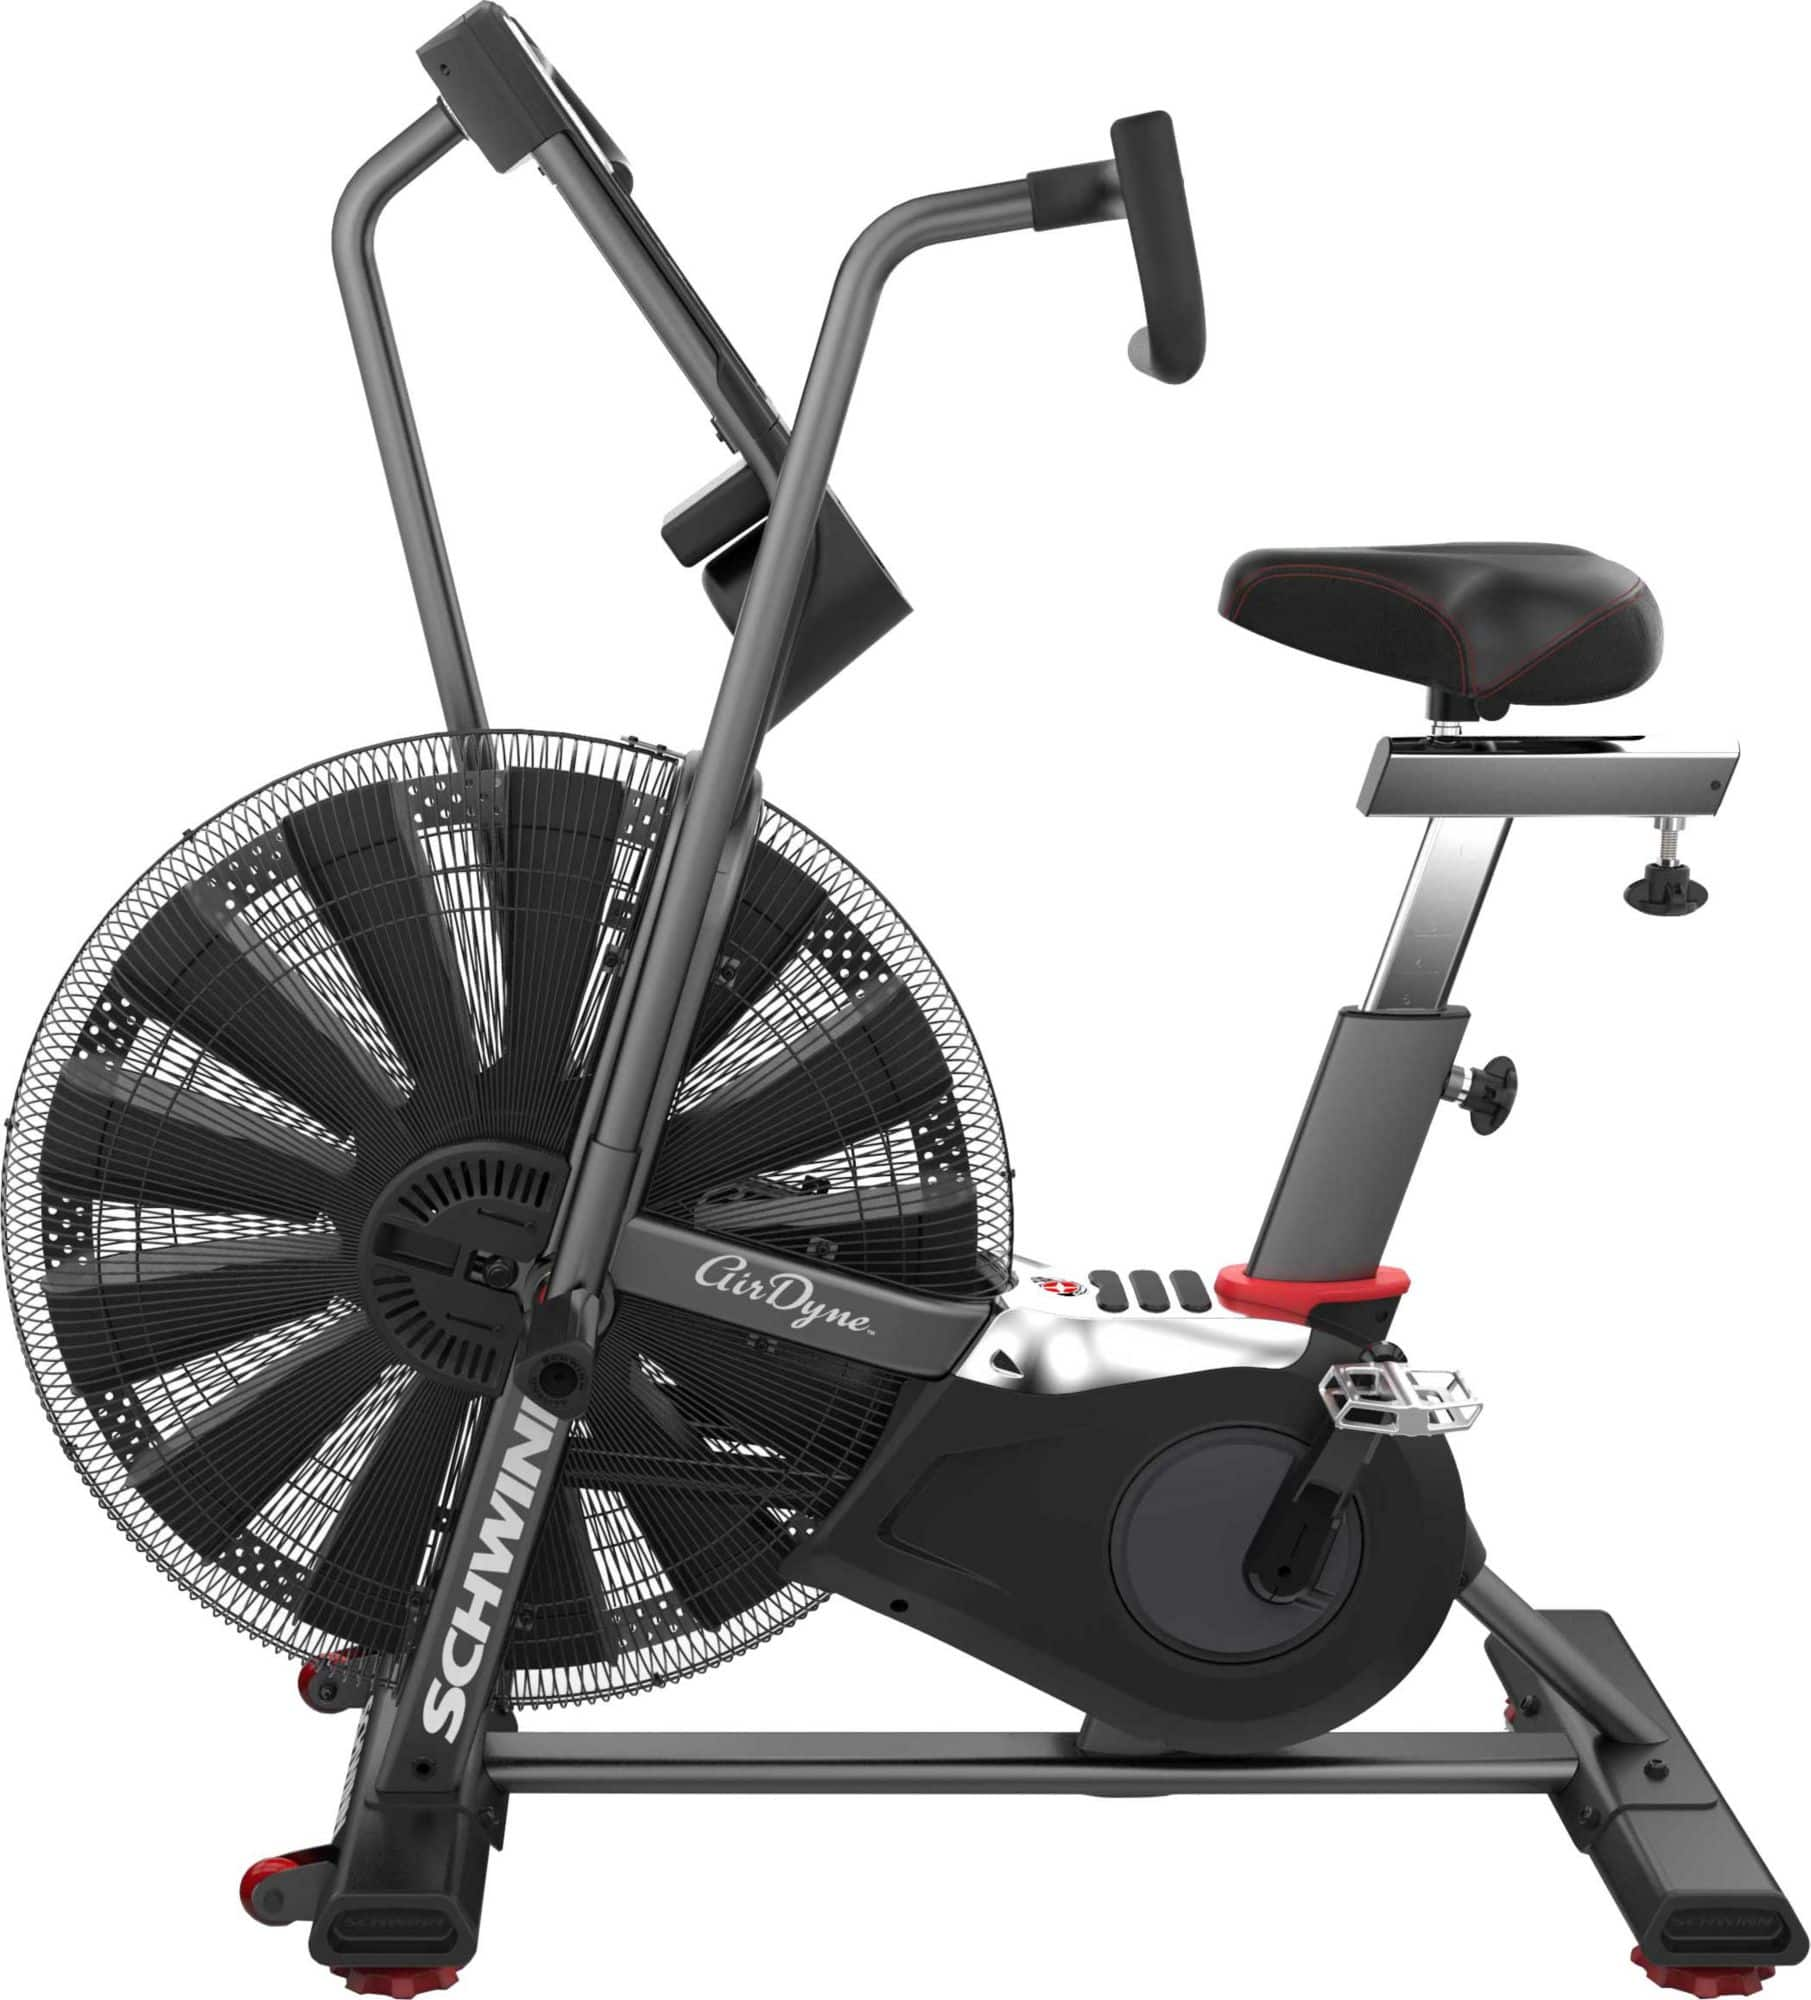 Schwinn AD7 Airdyne Exercise Bike $674.99